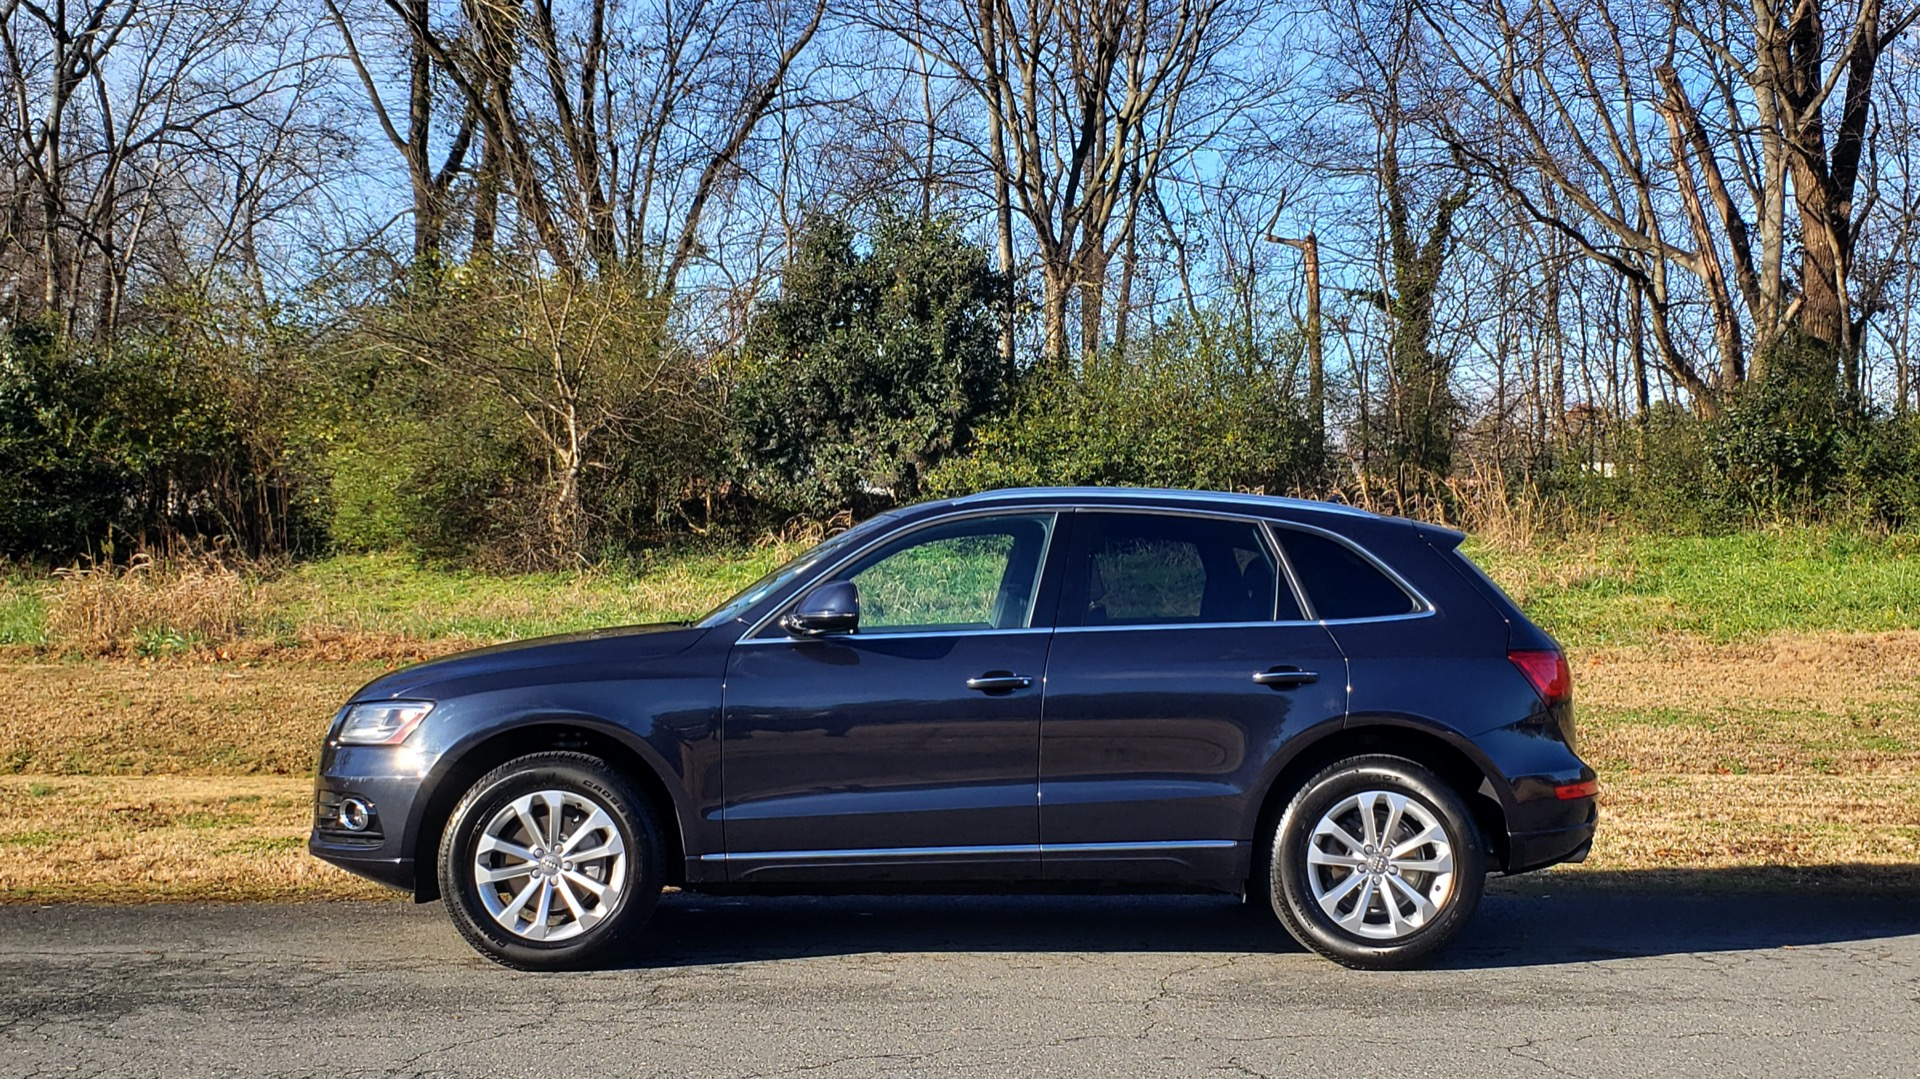 Used 2016 Audi Q5 PREMIUM PLUS 2.0T TIPTRONIC / TECH PKG / NAV / SUNROOF / REARVIEW for sale Sold at Formula Imports in Charlotte NC 28227 2